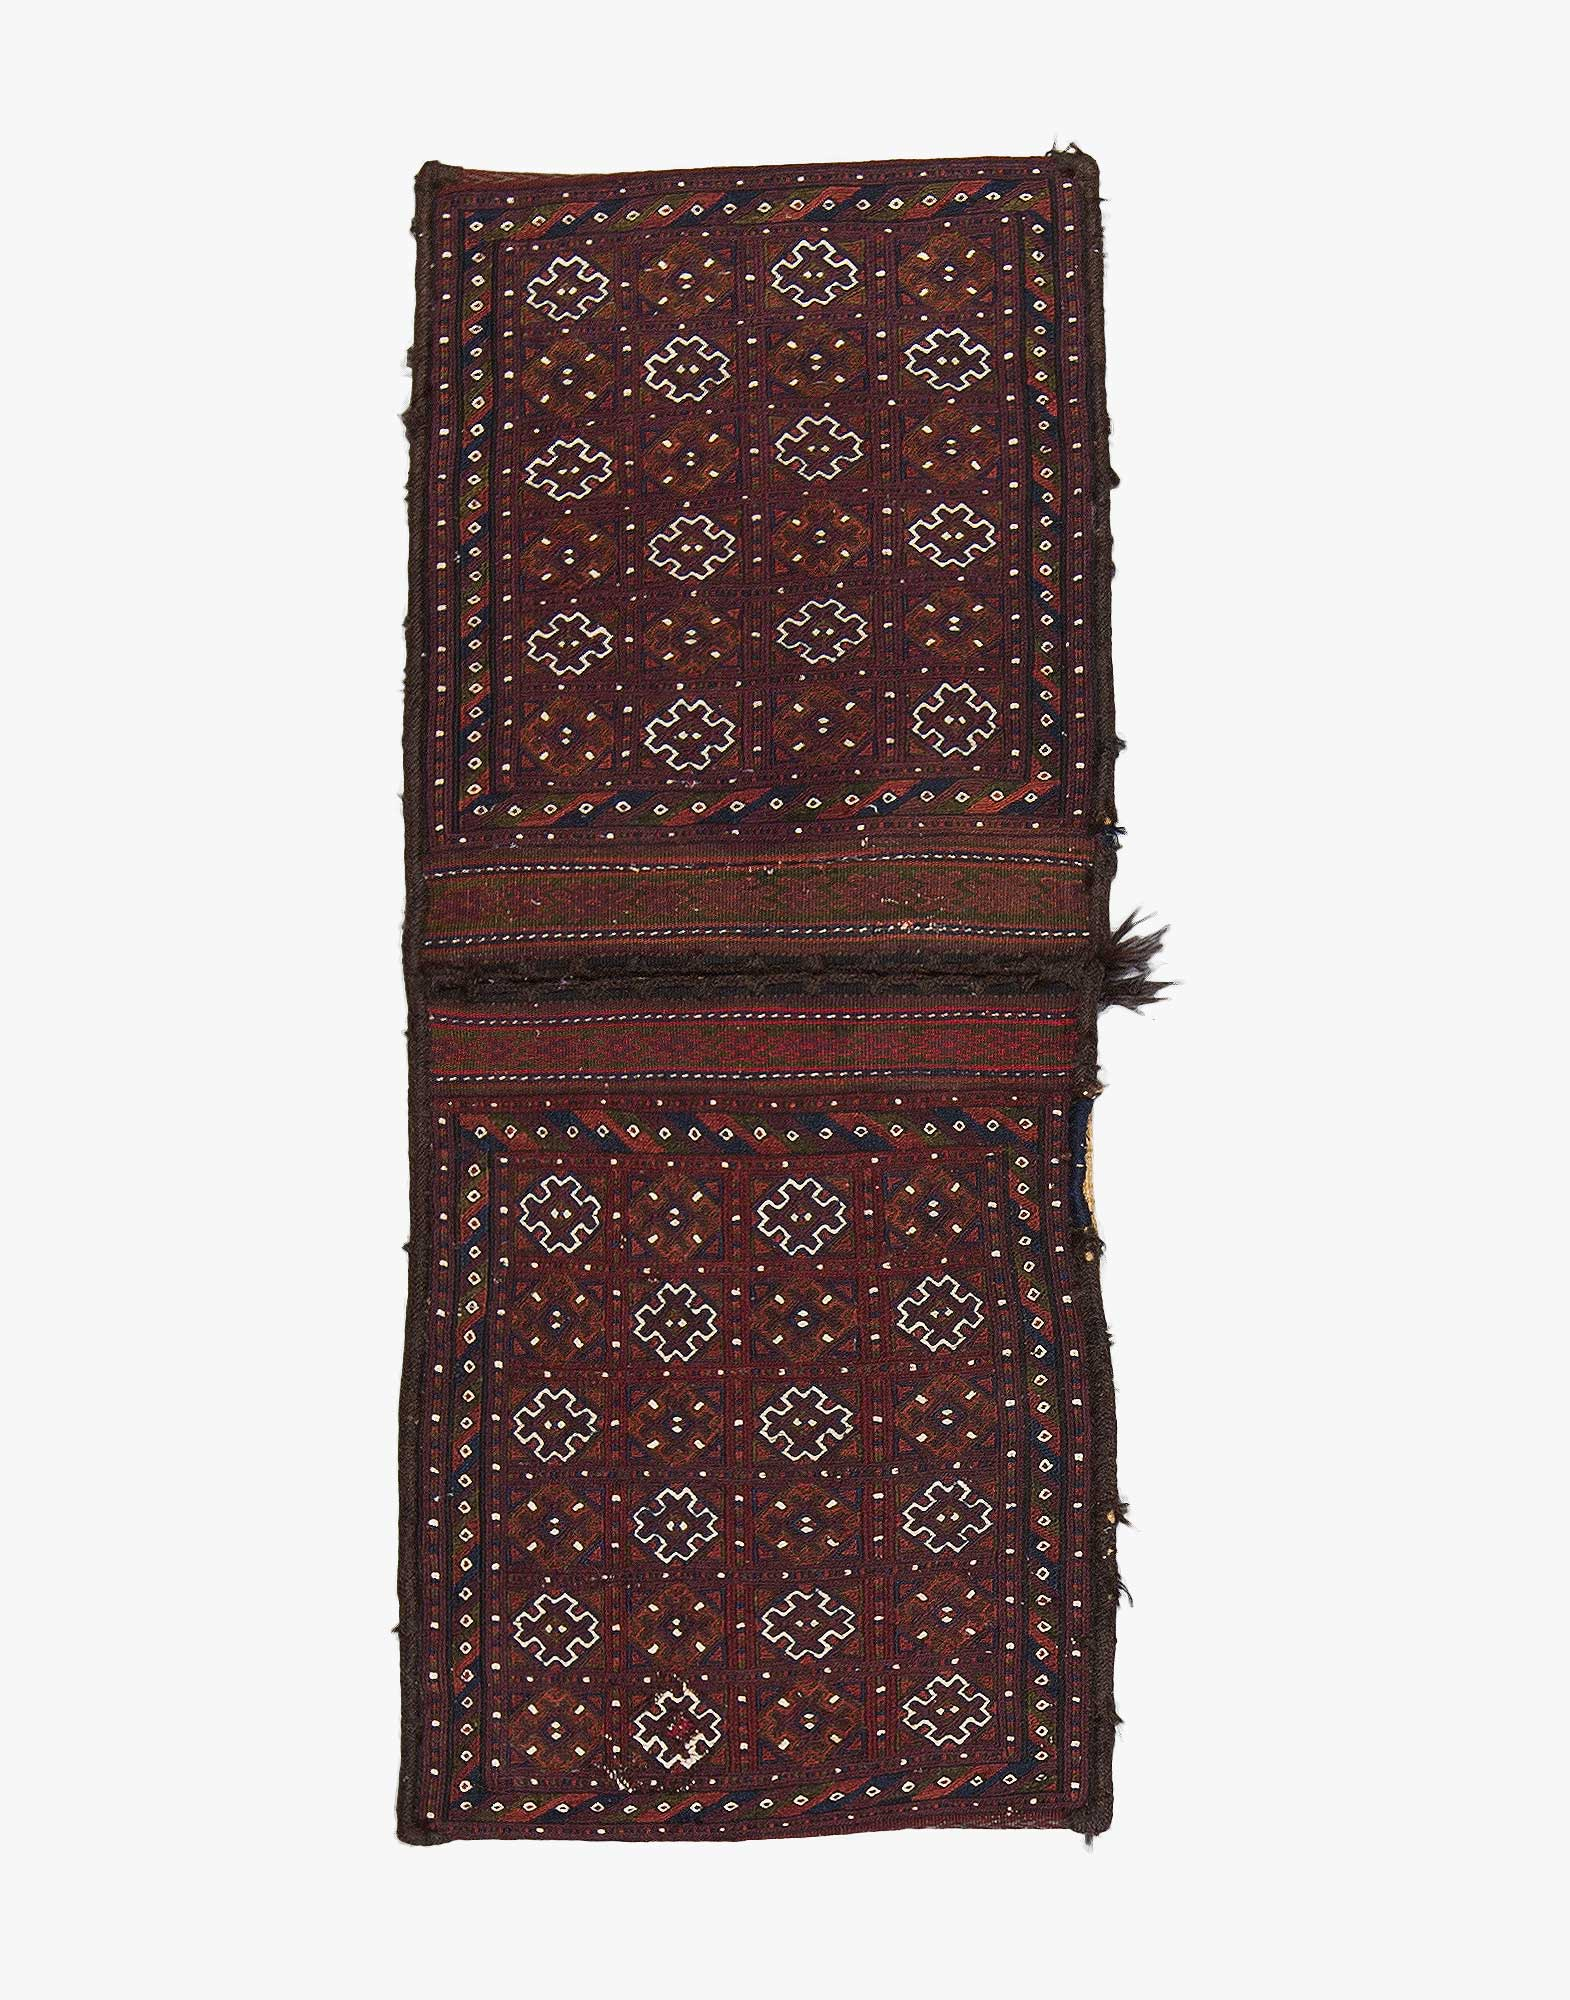 Turkmen Saddlebag